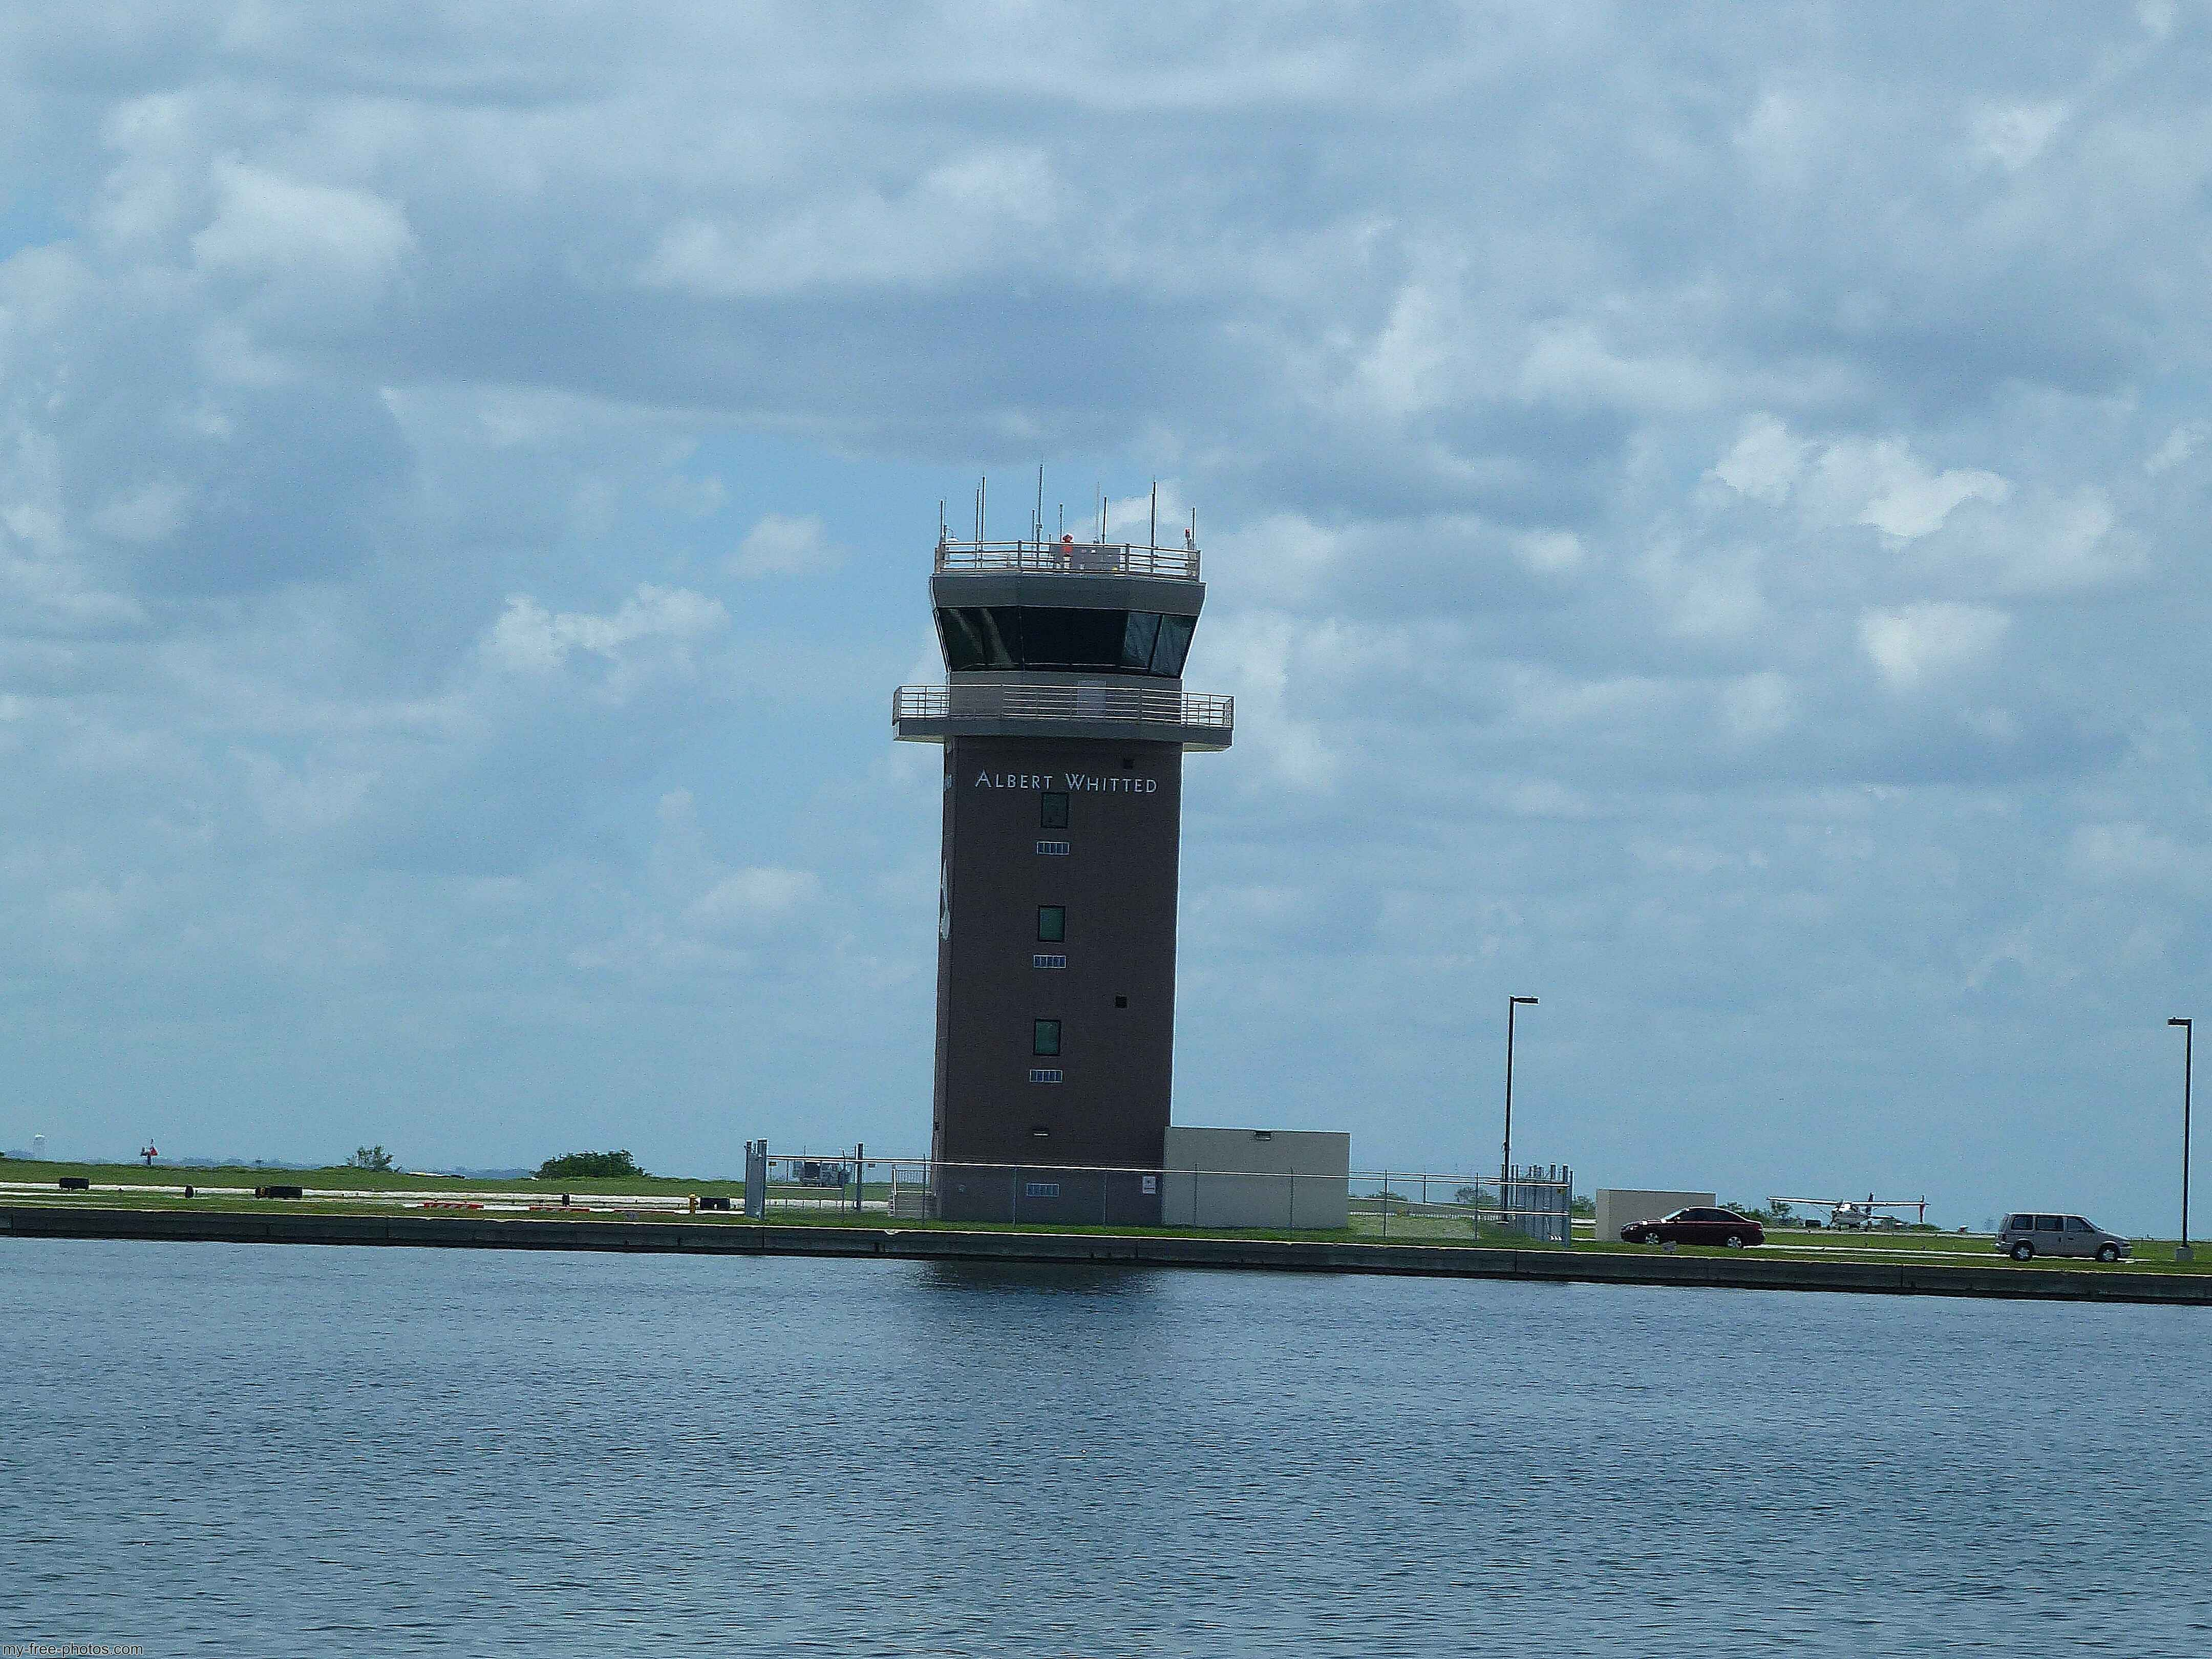 Albert Whitted Airport,St.Petersburg, Florida